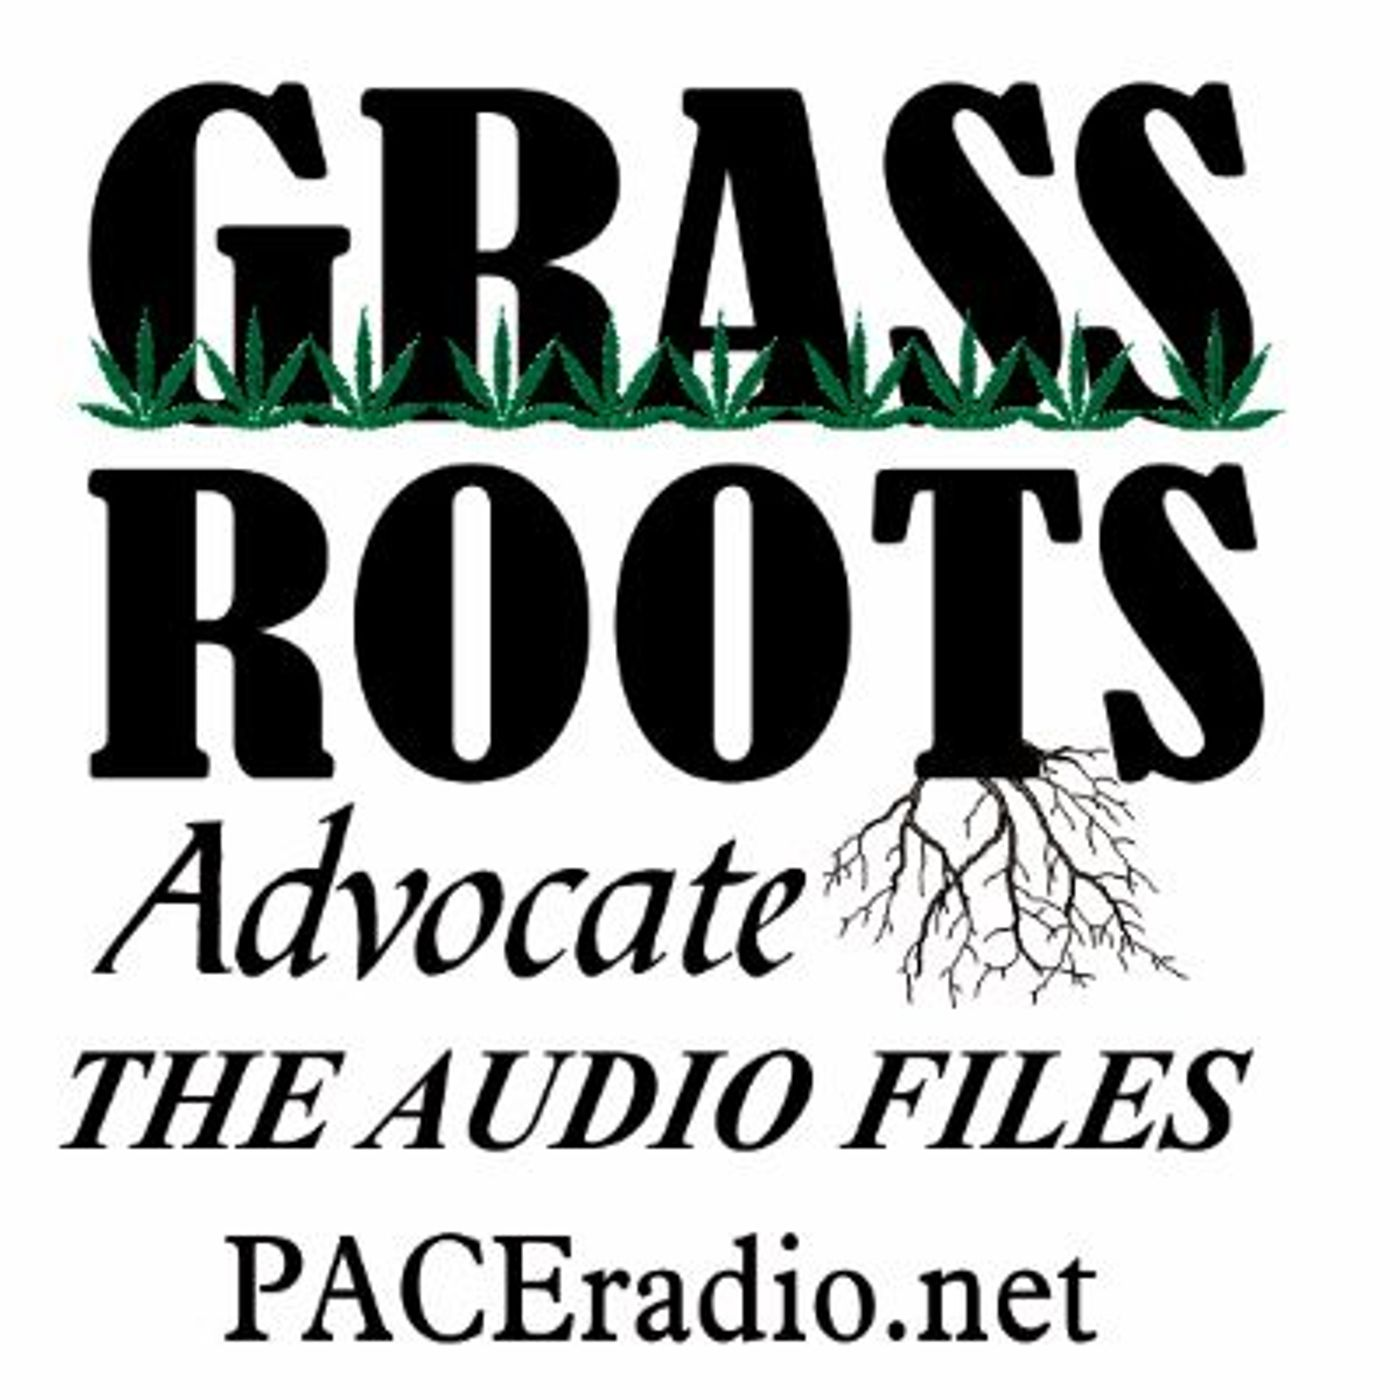 Grassroots Advocate: The Audio Files - Issue 12